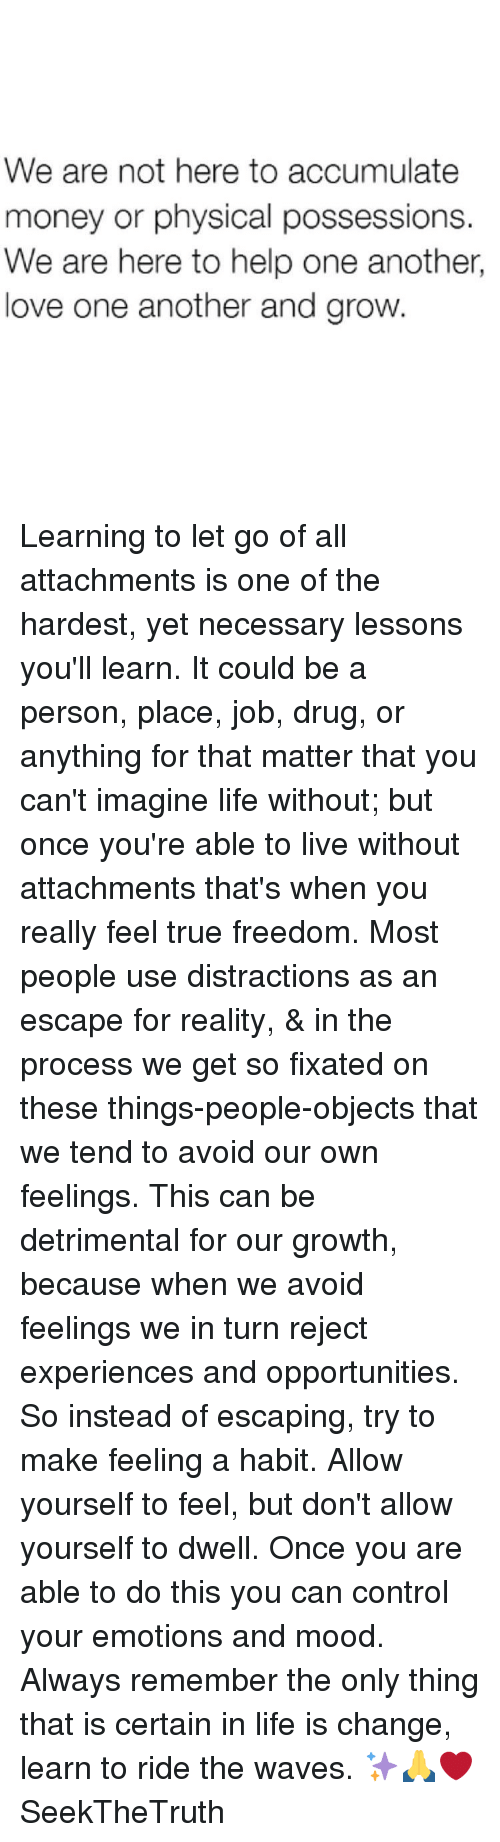 Memes, 🤖, and Personal: We are not here to accumulate  money or physical possessions.  We are here to help one another,  love one another and grow. Learning to let go of all attachments is one of the hardest, yet necessary lessons you'll learn. It could be a person, place, job, drug, or anything for that matter that you can't imagine life without; but once you're able to live without attachments that's when you really feel true freedom. Most people use distractions as an escape for reality, & in the process we get so fixated on these things-people-objects that we tend to avoid our own feelings. This can be detrimental for our growth, because when we avoid feelings we in turn reject experiences and opportunities. So instead of escaping, try to make feeling a habit. Allow yourself to feel, but don't allow yourself to dwell. Once you are able to do this you can control your emotions and mood. Always remember the only thing that is certain in life is change, learn to ride the waves. ✨🙏❤️ SeekTheTruth